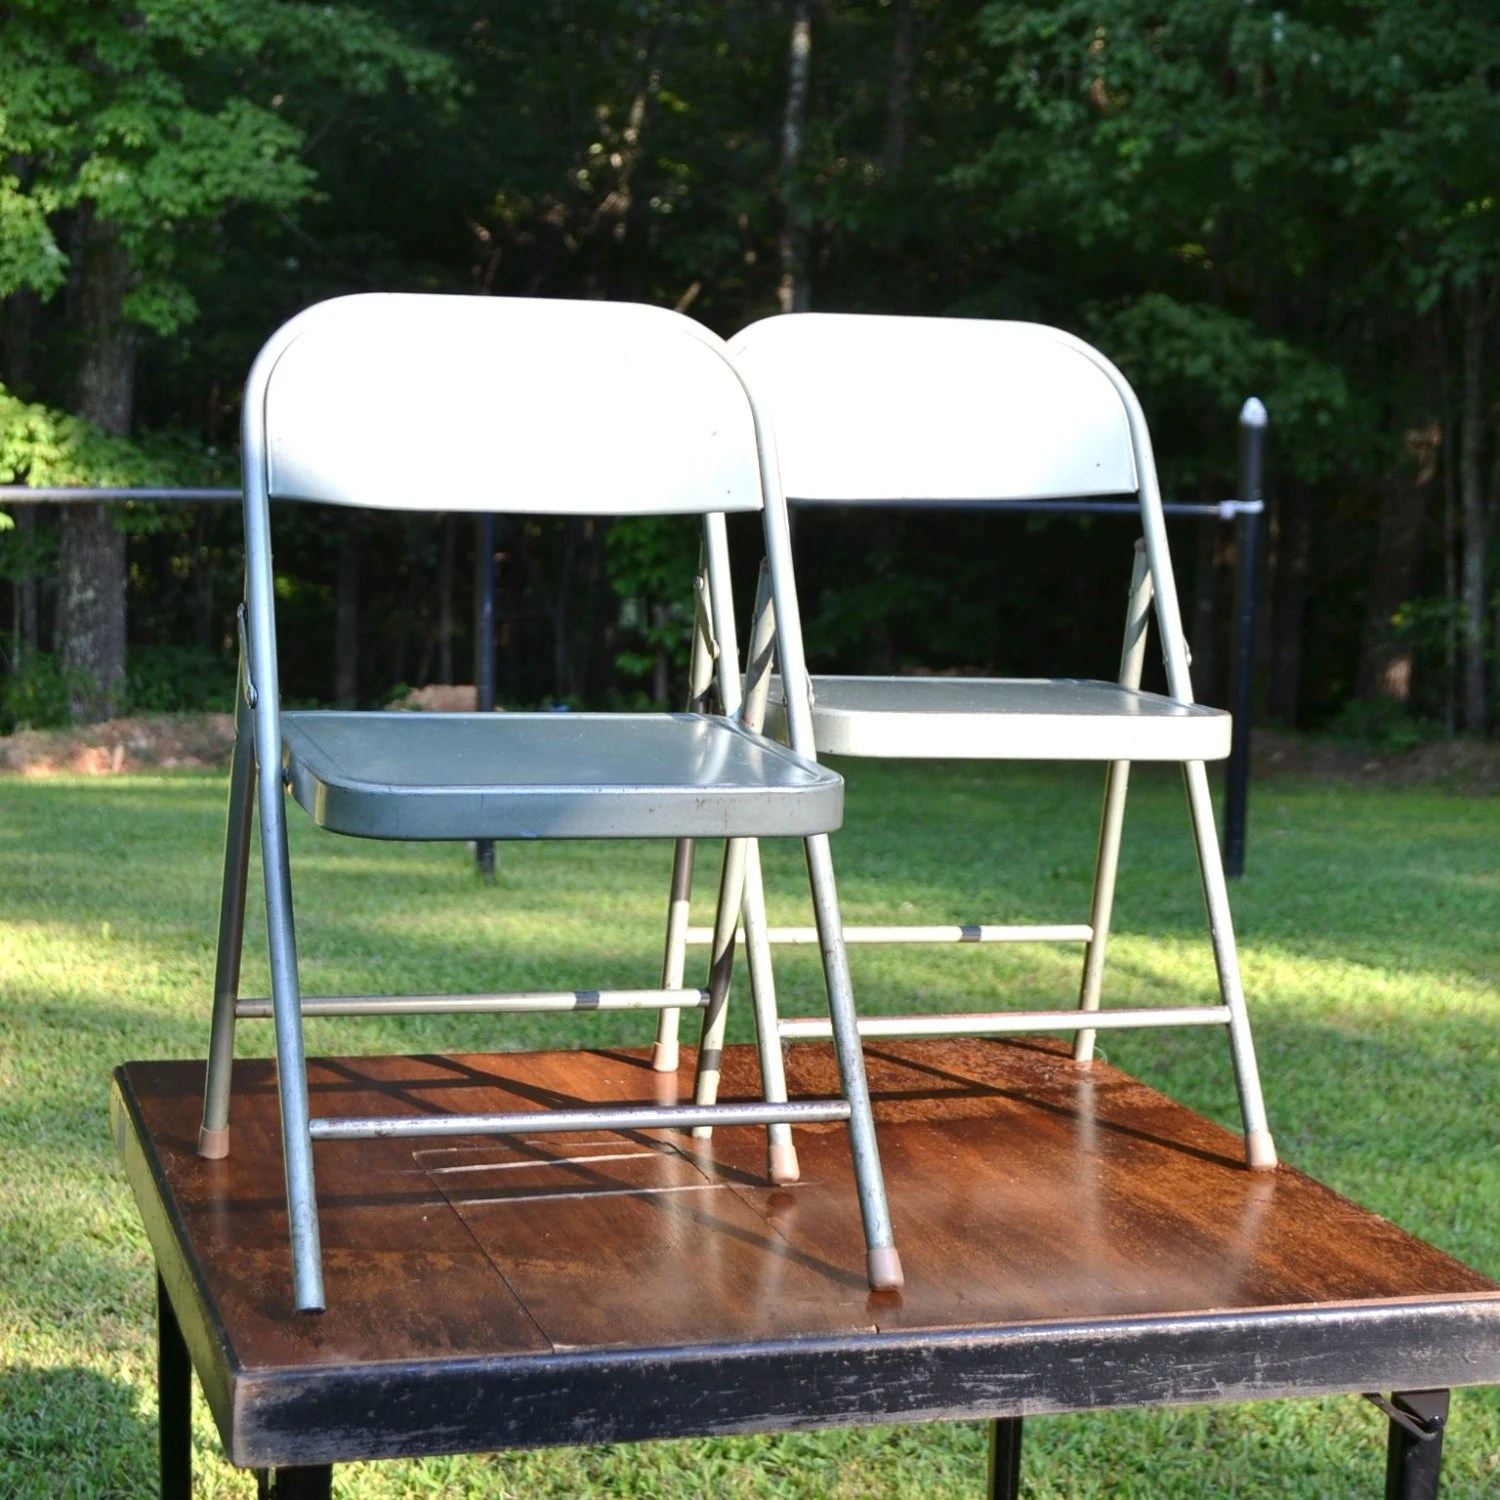 krueger folding chairs power chair batteries u1 vintage child size gray metal etsy image 0